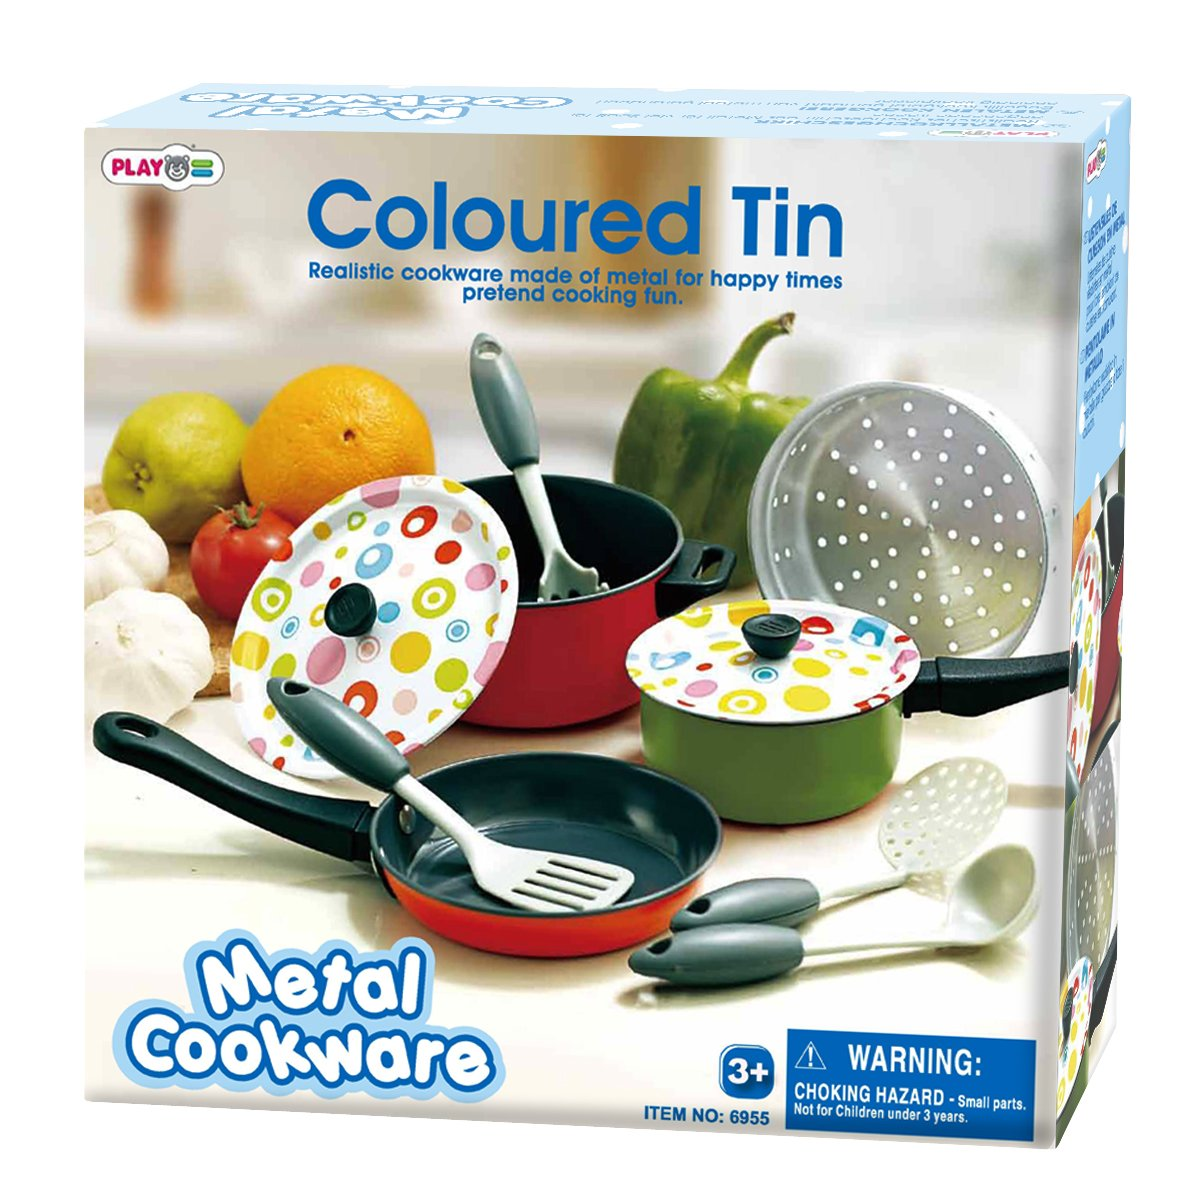 PlayGo Metal Cookware Coloured Tin by PlayGo